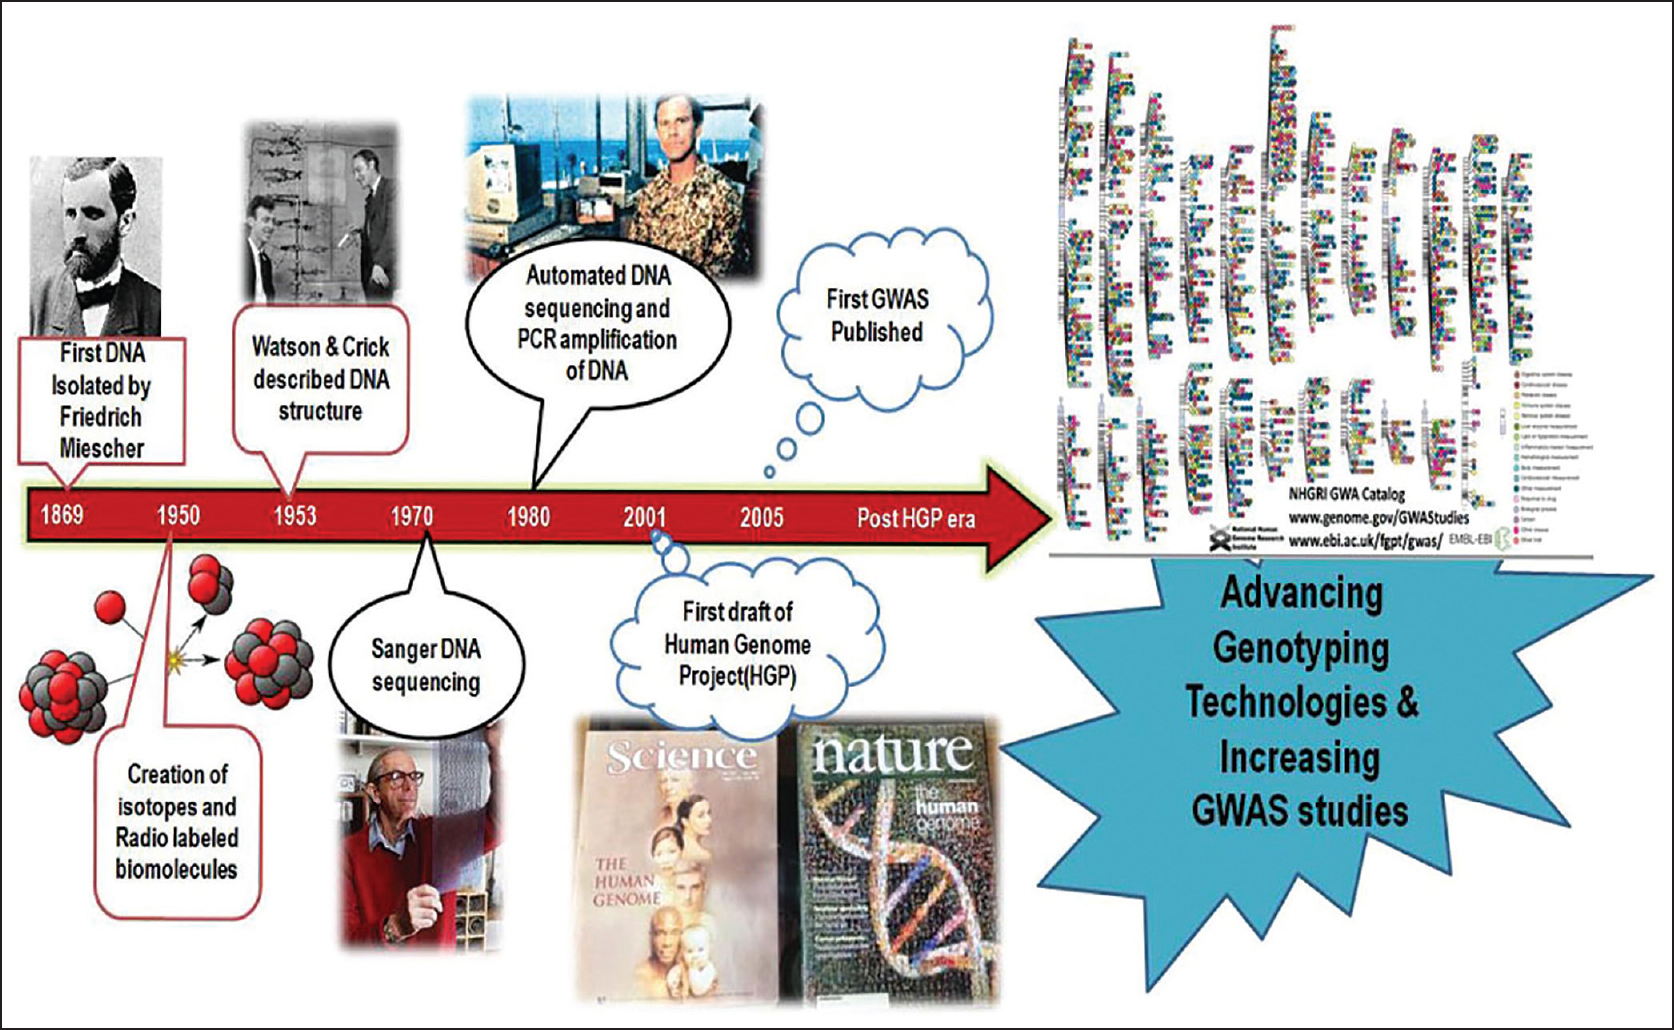 Figure 1: Schematic diagram of events contributing to the development of genomics